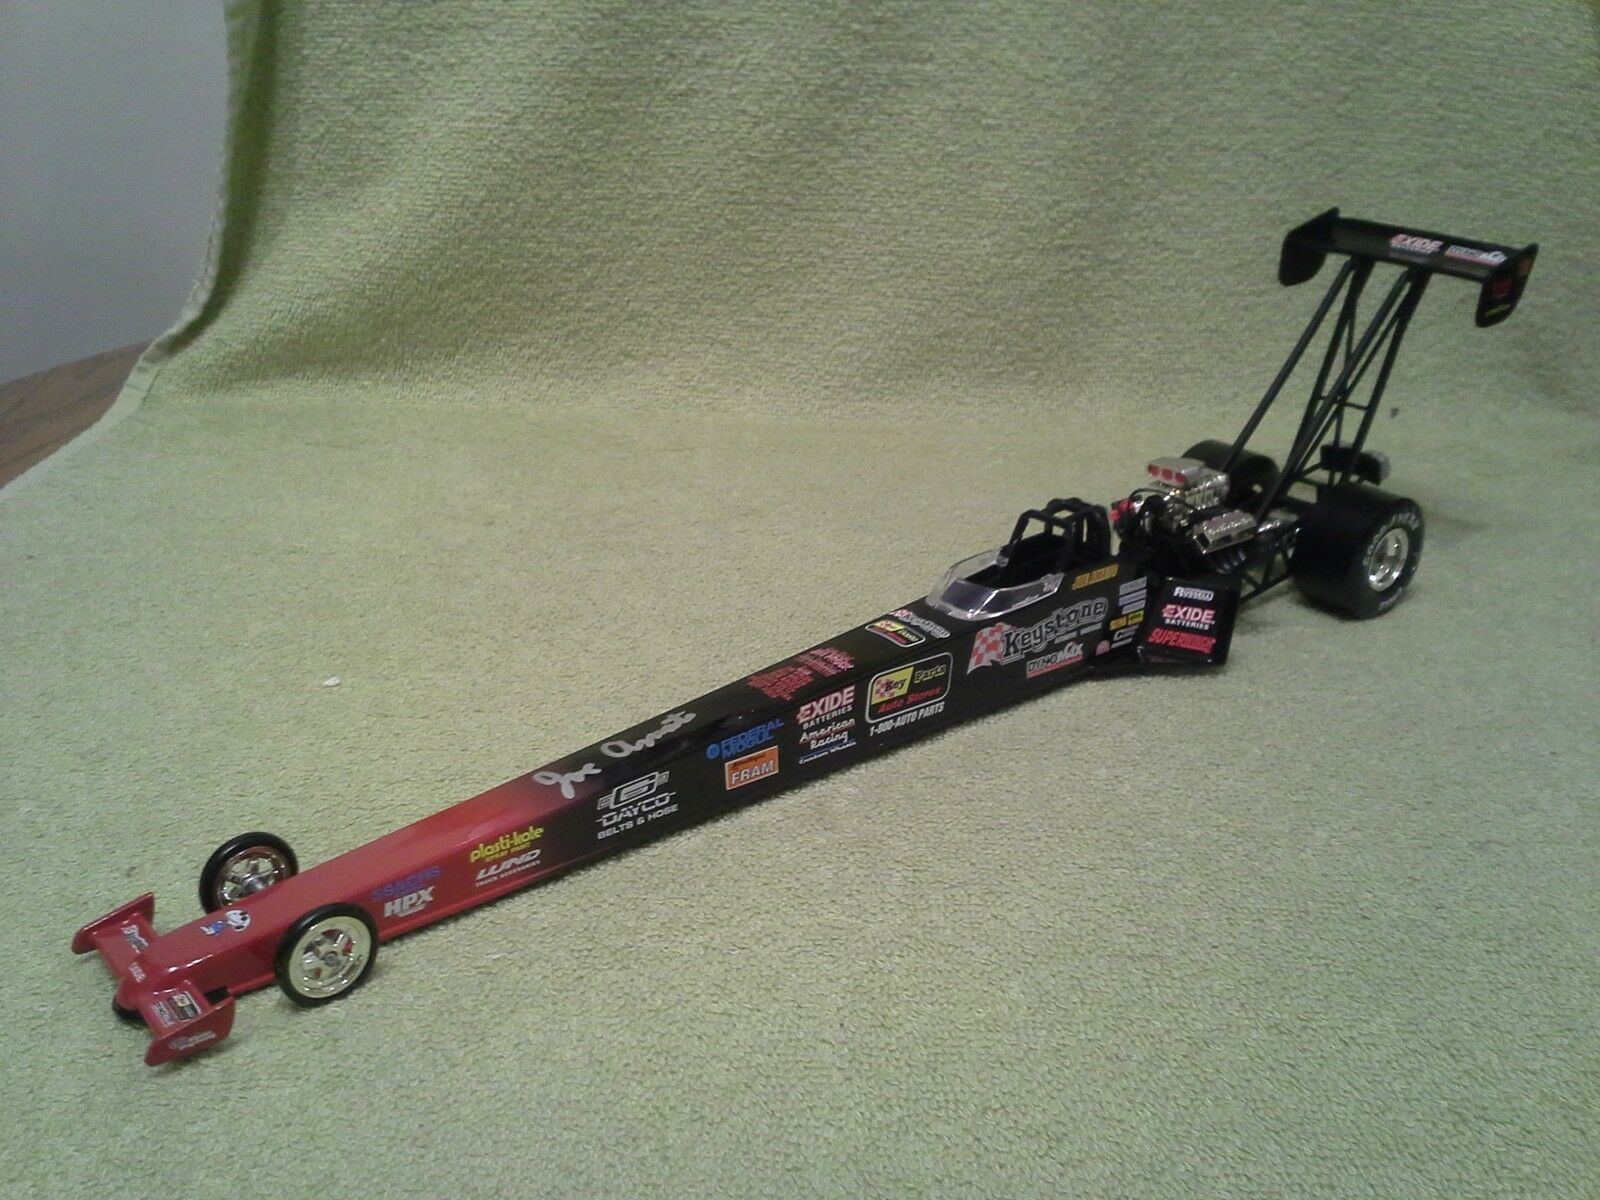 1996 Action JOE AMATO Keystone Autographed NHRA Fuel Dragster 1 24 Diecast